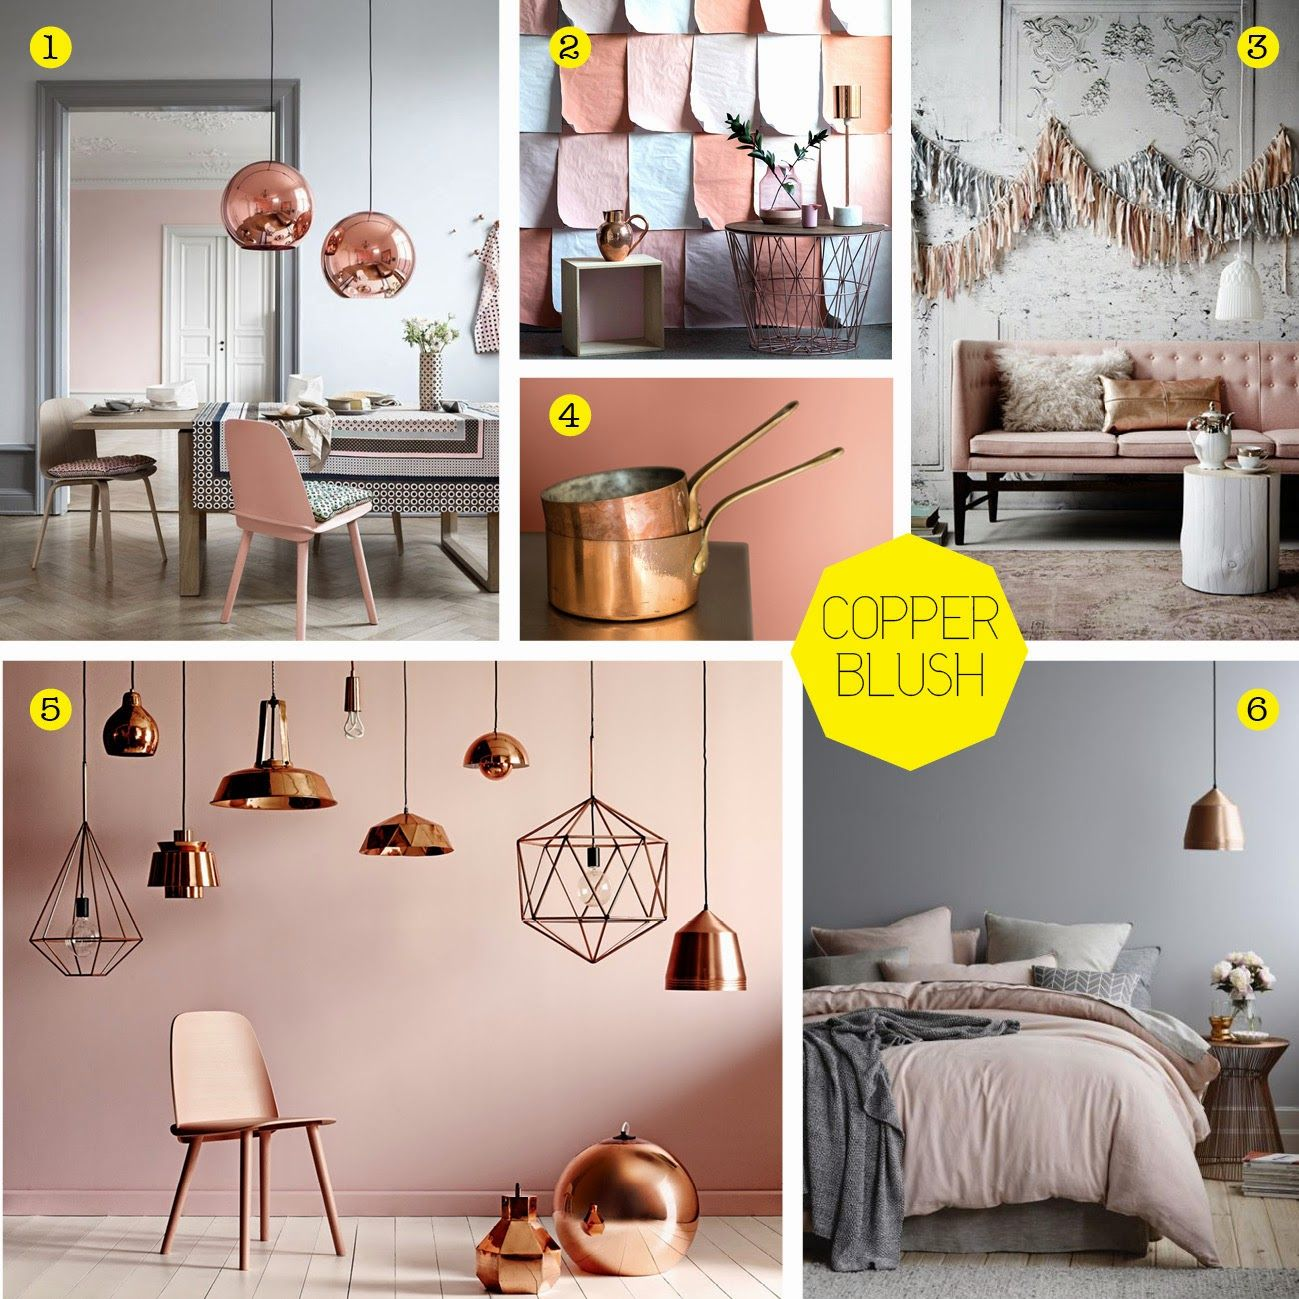 Best The Style Index Blushing Beauty Dulux Colour Of 2015 400 x 300